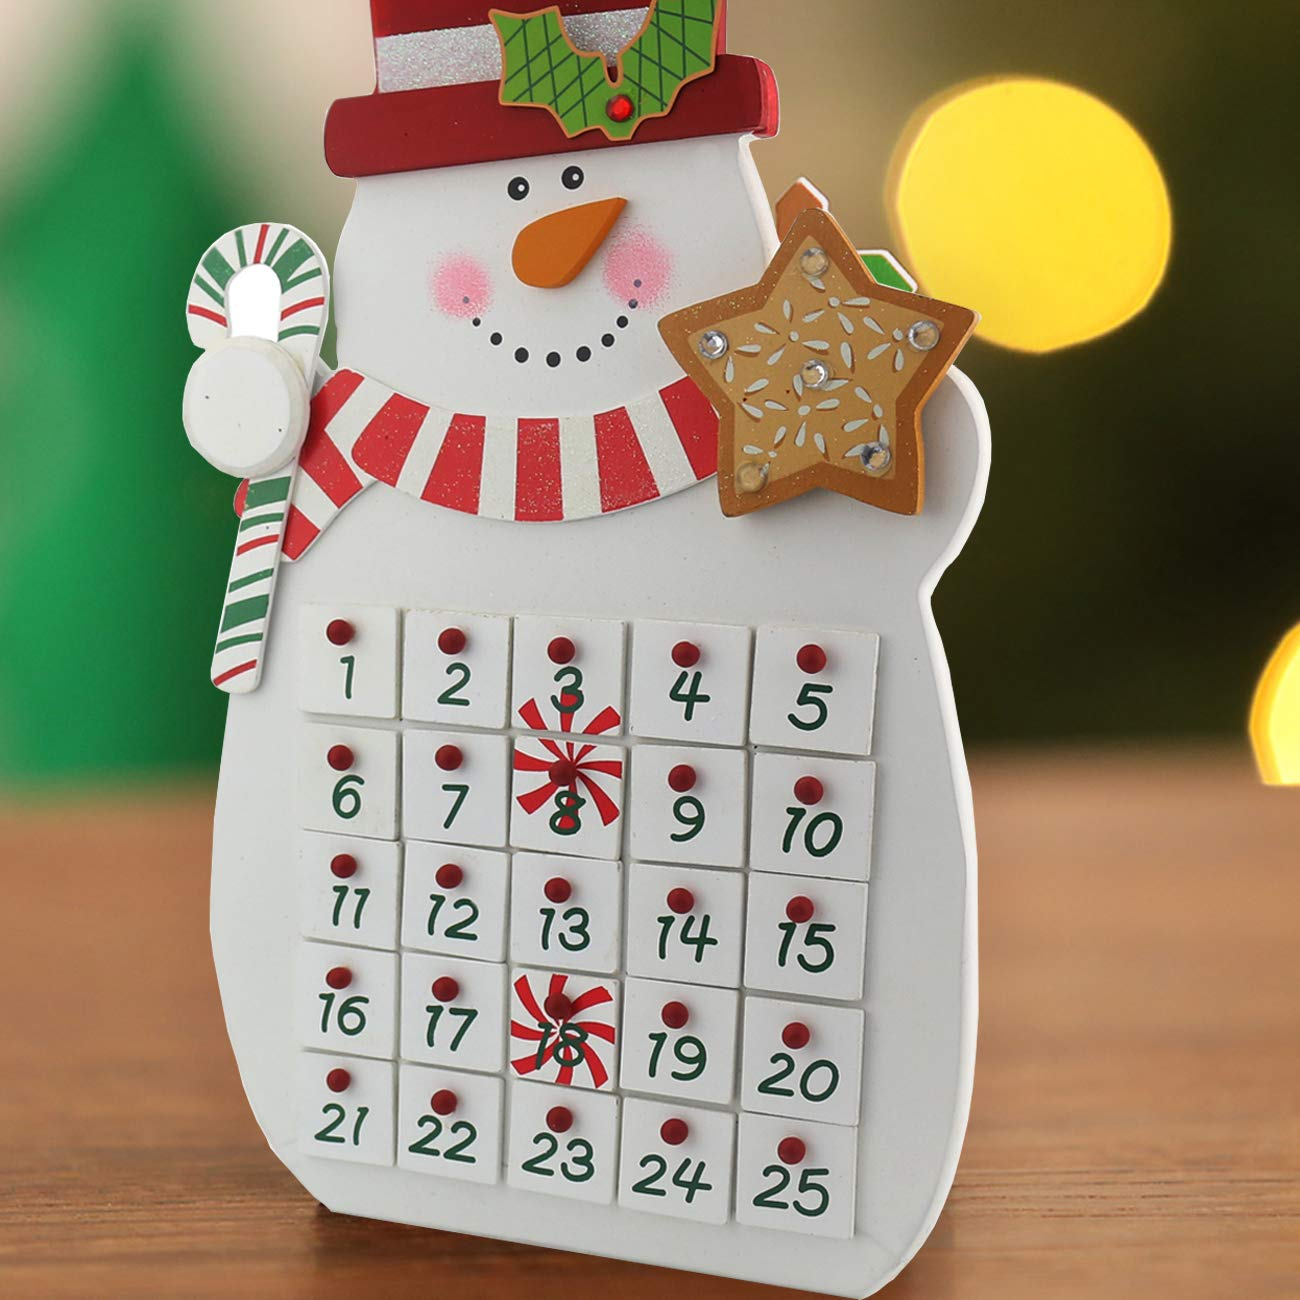 Sunnyglade 2018| 25 Day Countdown Calendar | Premium Christmas Painted Snowman Xmas Gifts Keepsake | Unique Holiday Decoration |100% Wood Construction, White Red Snowman Advent Calendar